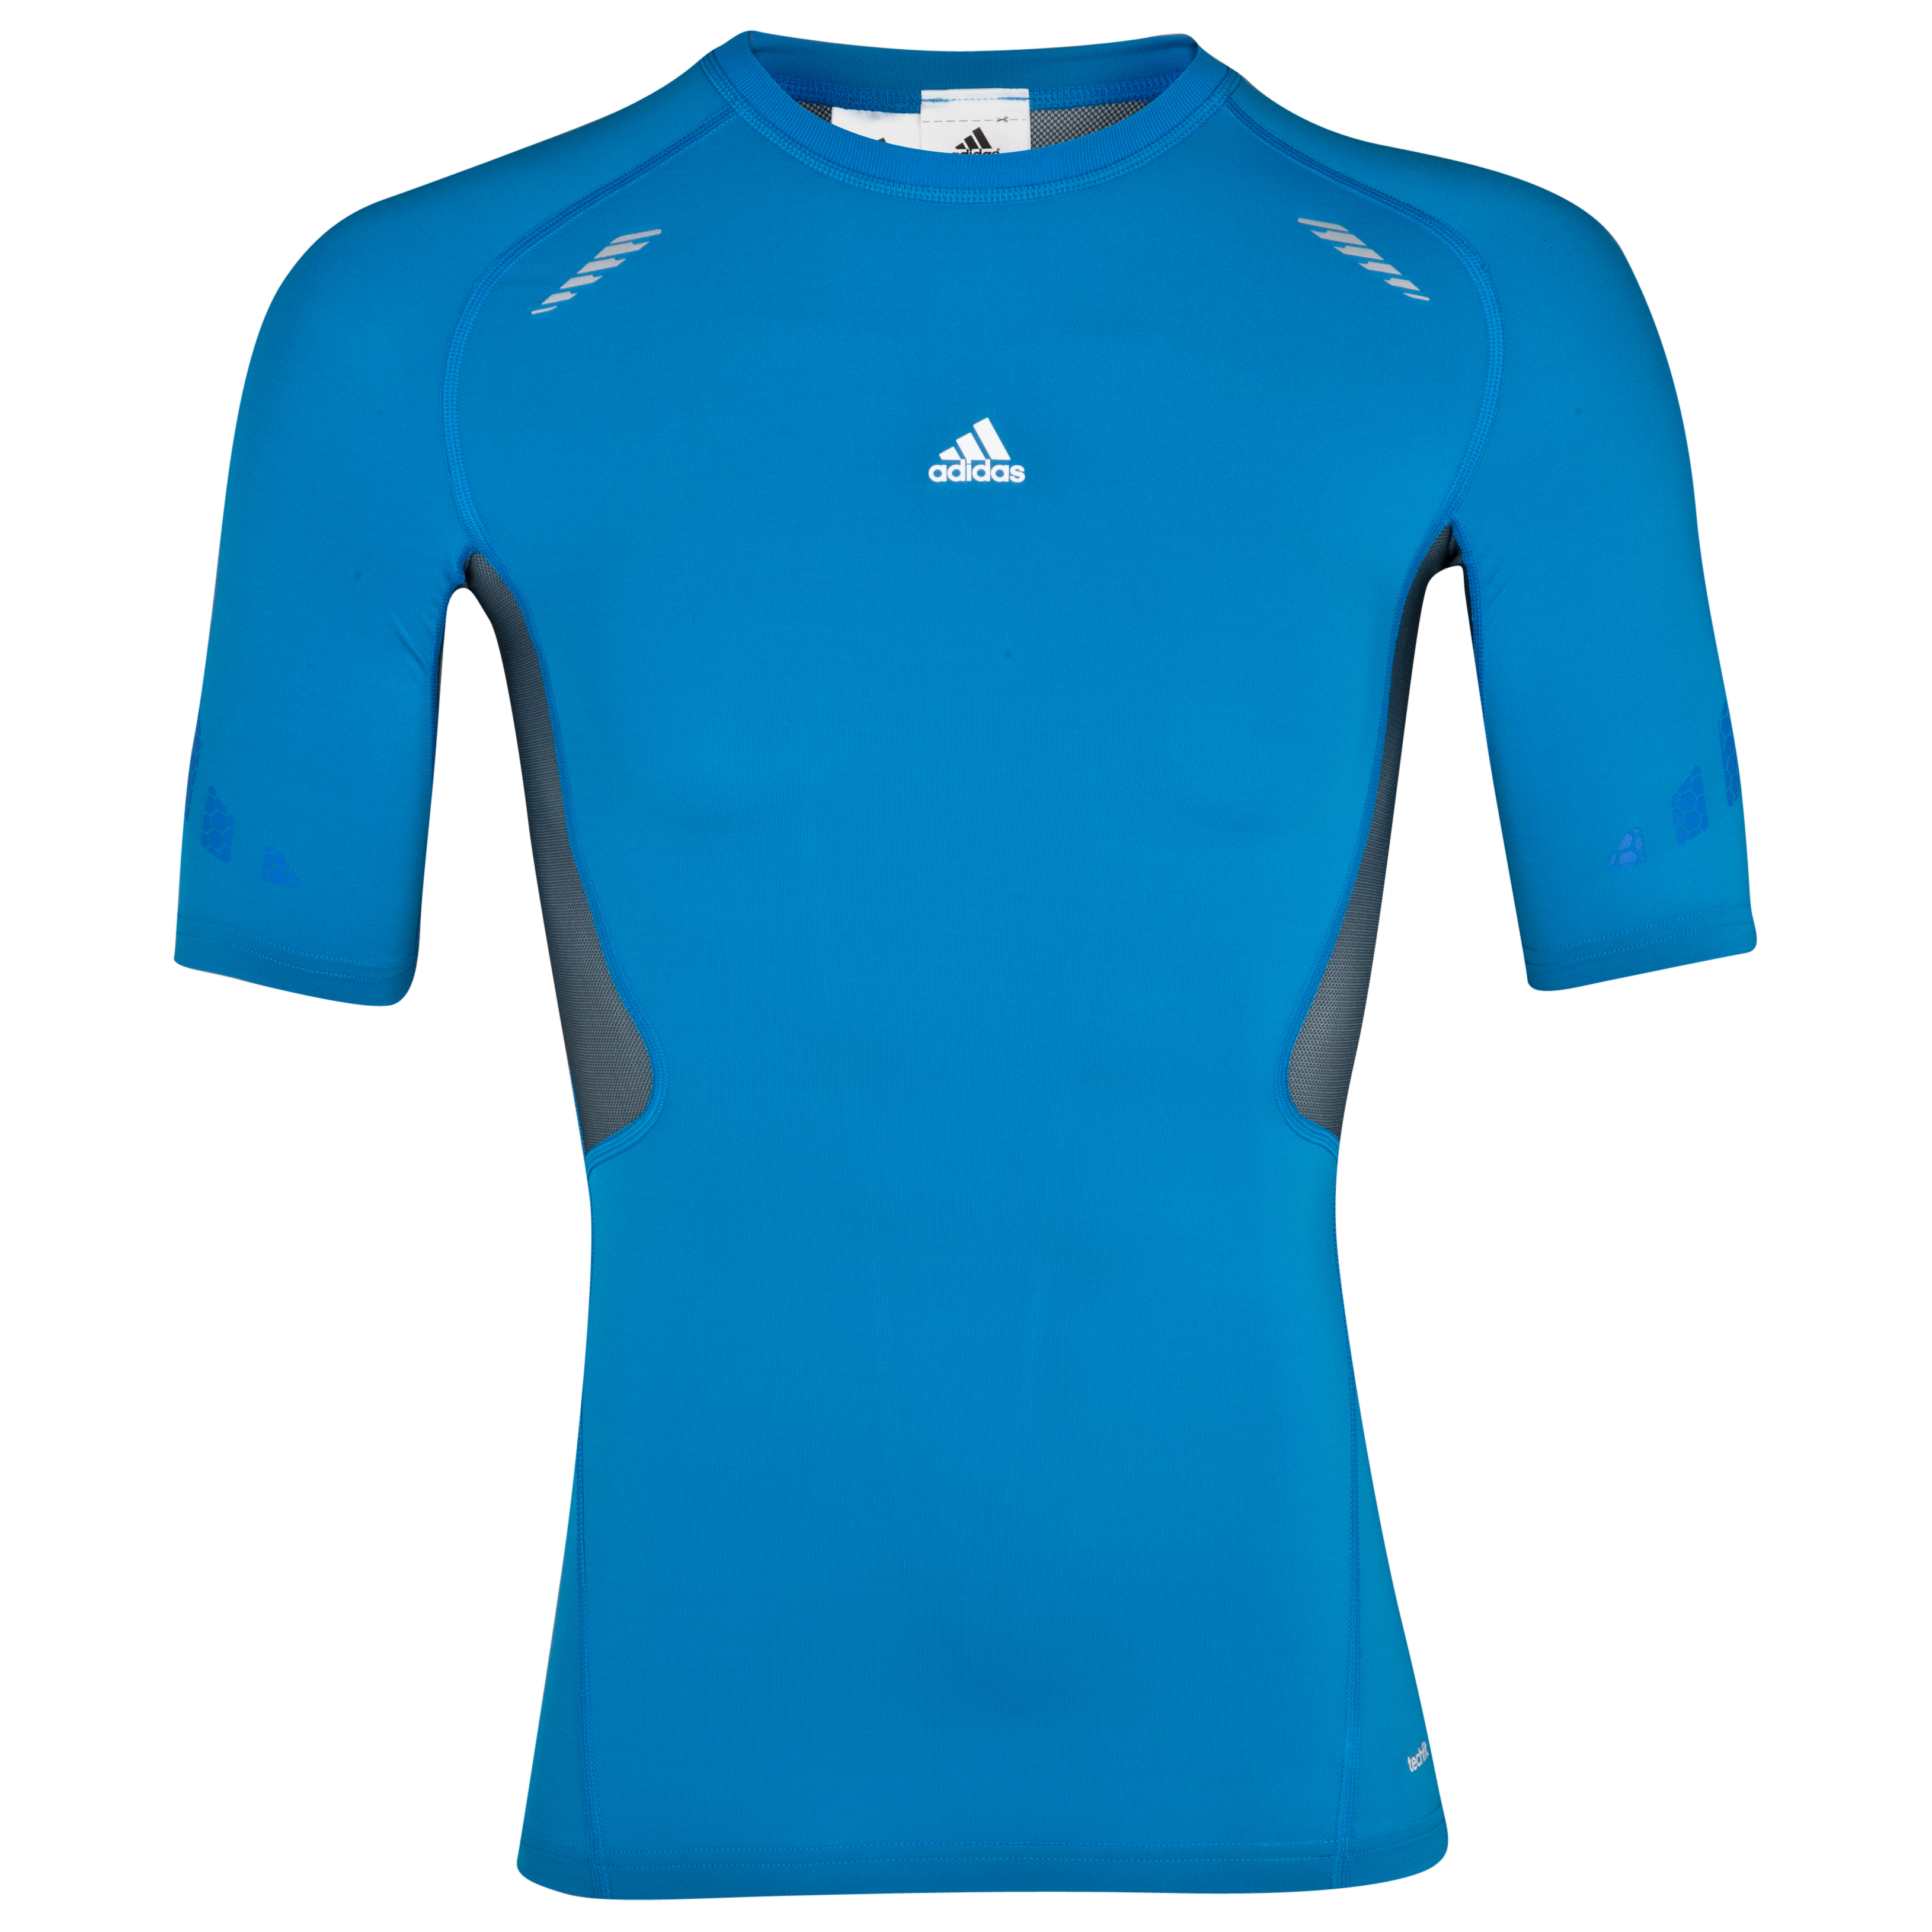 adidas TechFit Preperation Baselayer Top - Short Sleeve - Bright Blue